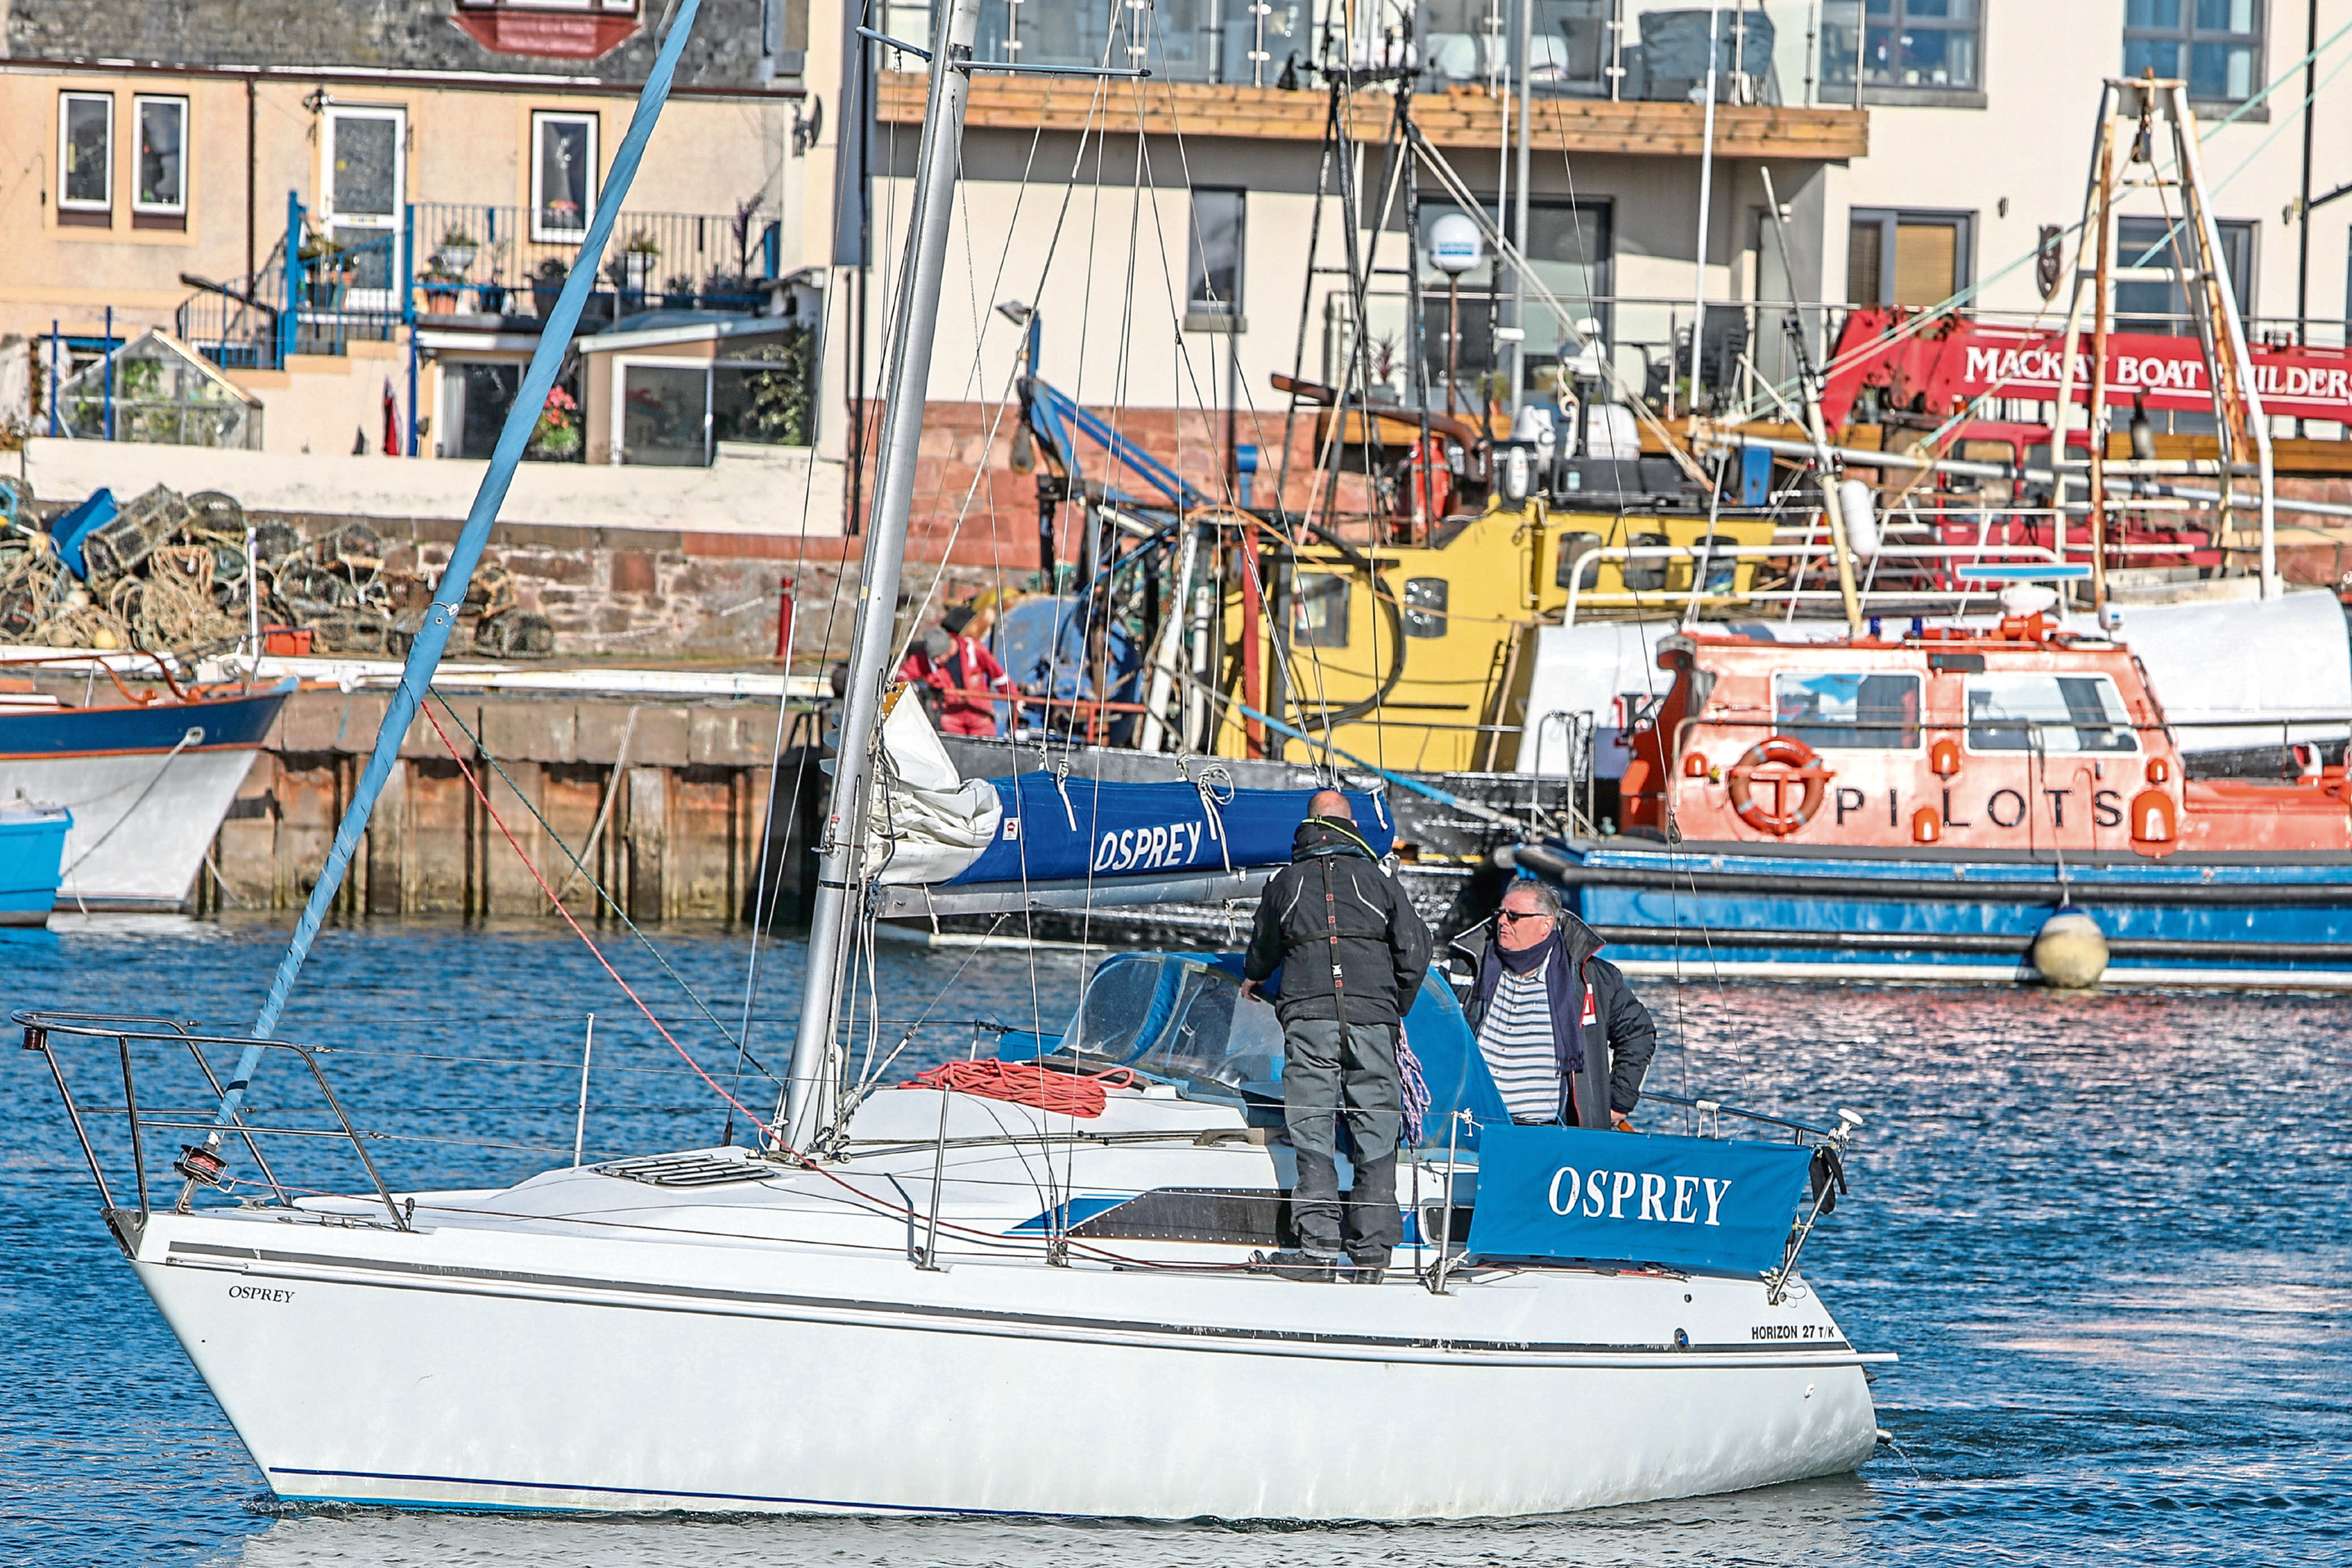 The yacht's owner brings the boat back in to Arbroath Harbour.